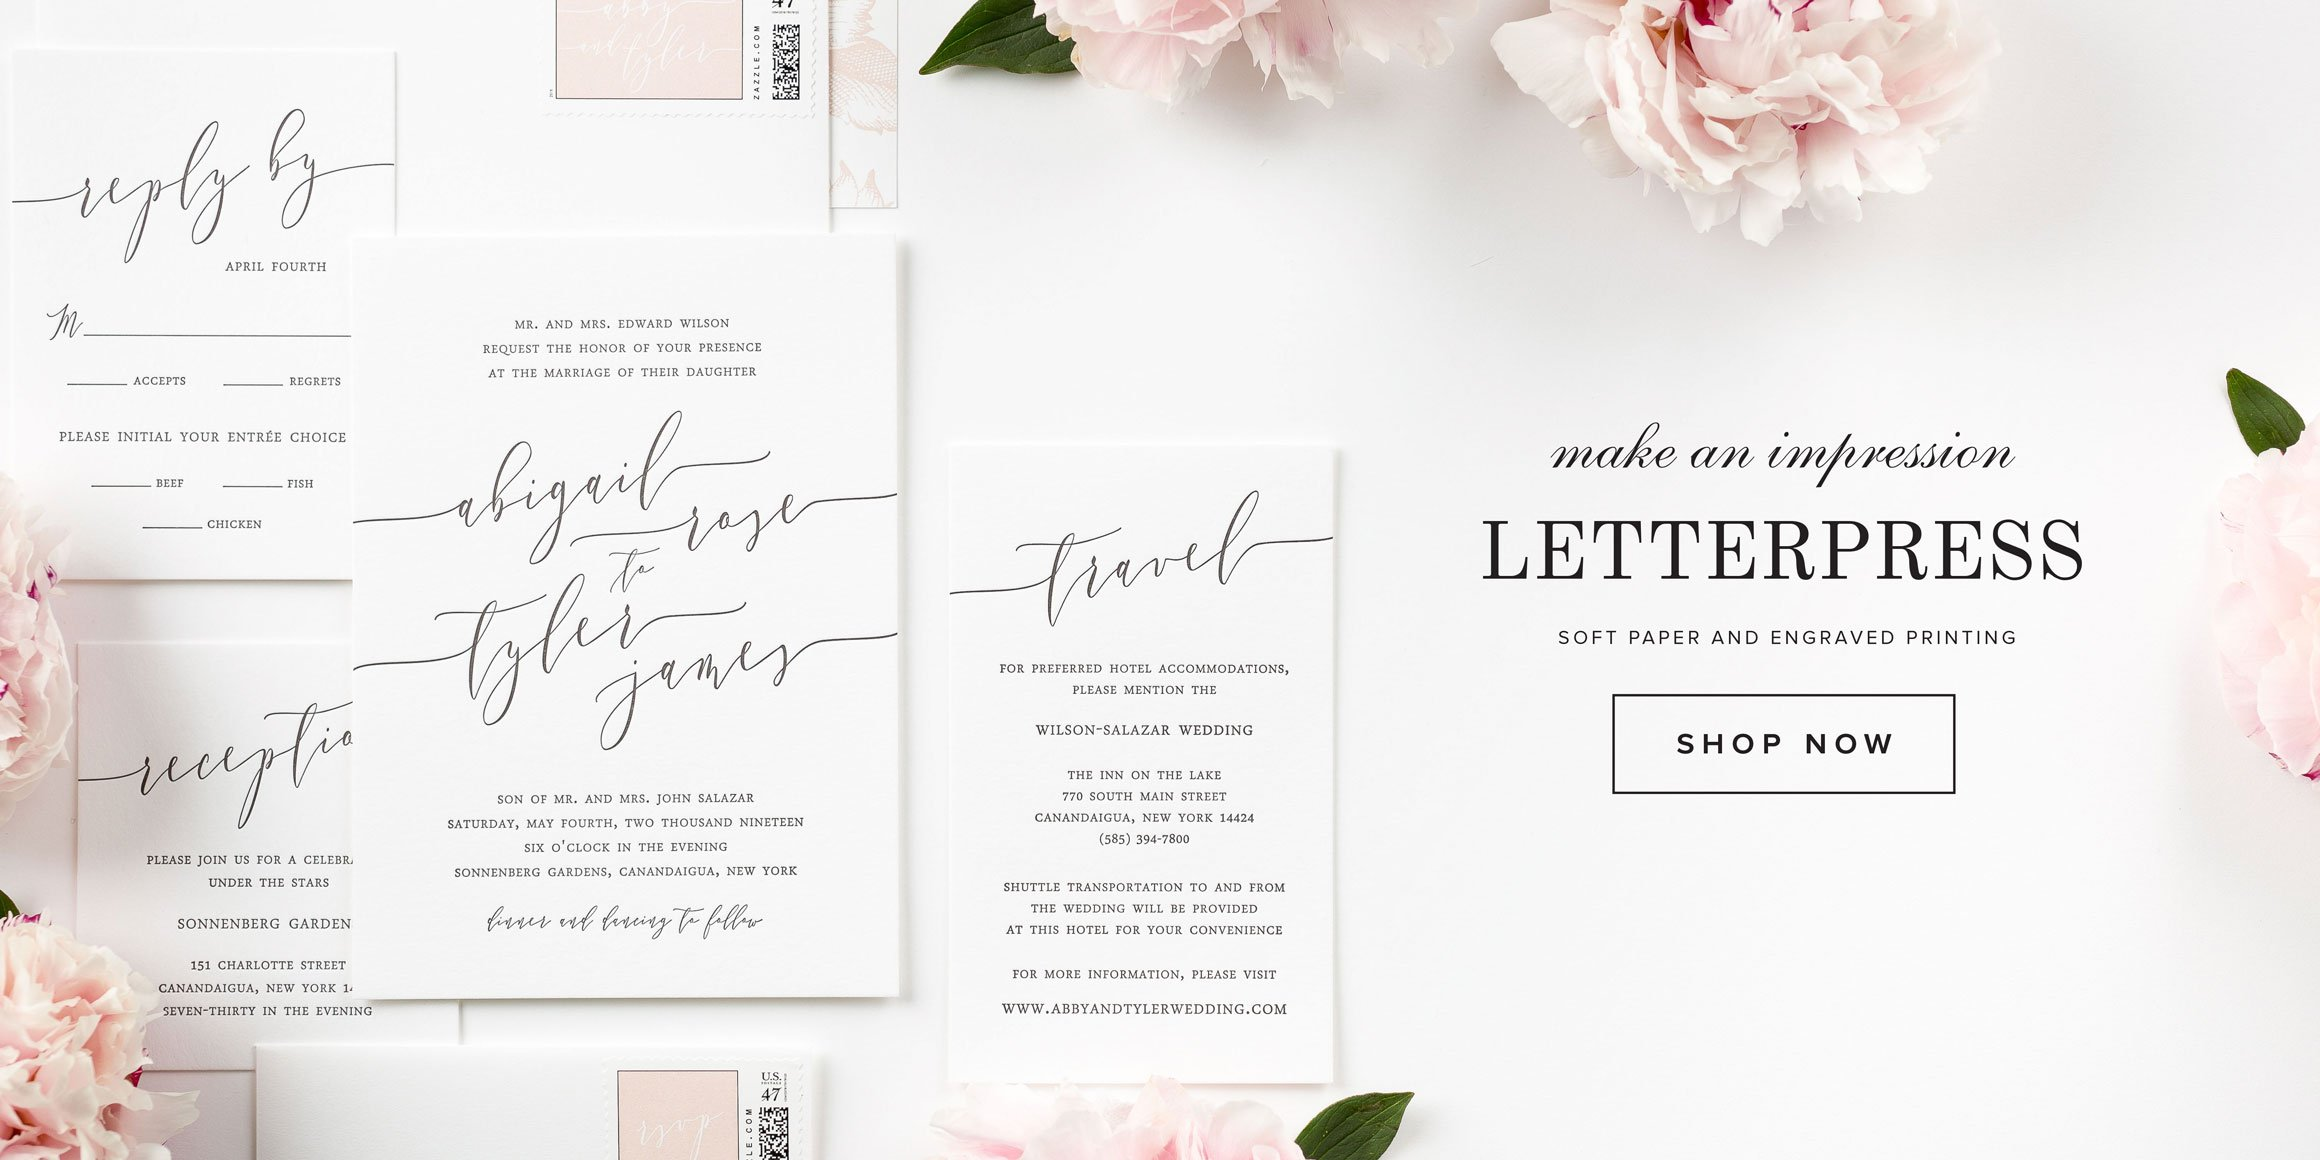 Wedding Invitations And Save The Dates was adorable invitations ideas